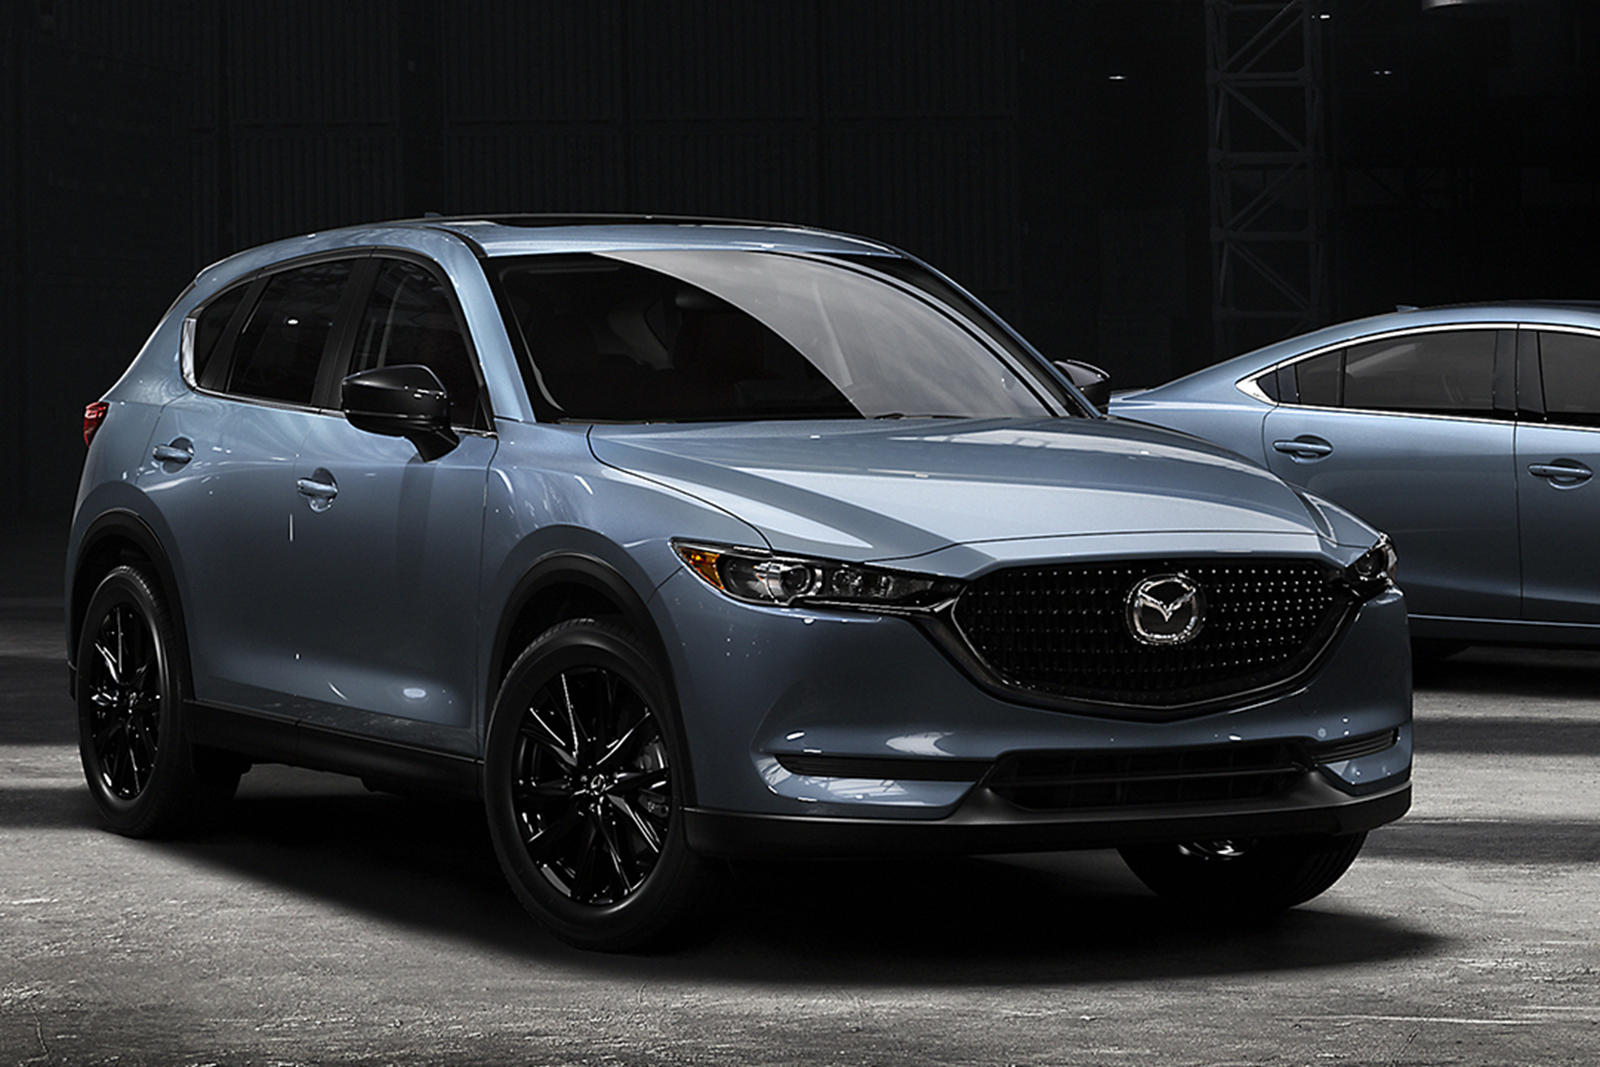 2021 Mazda CX-5 Adds New Carbon Edition Model - Wade ...